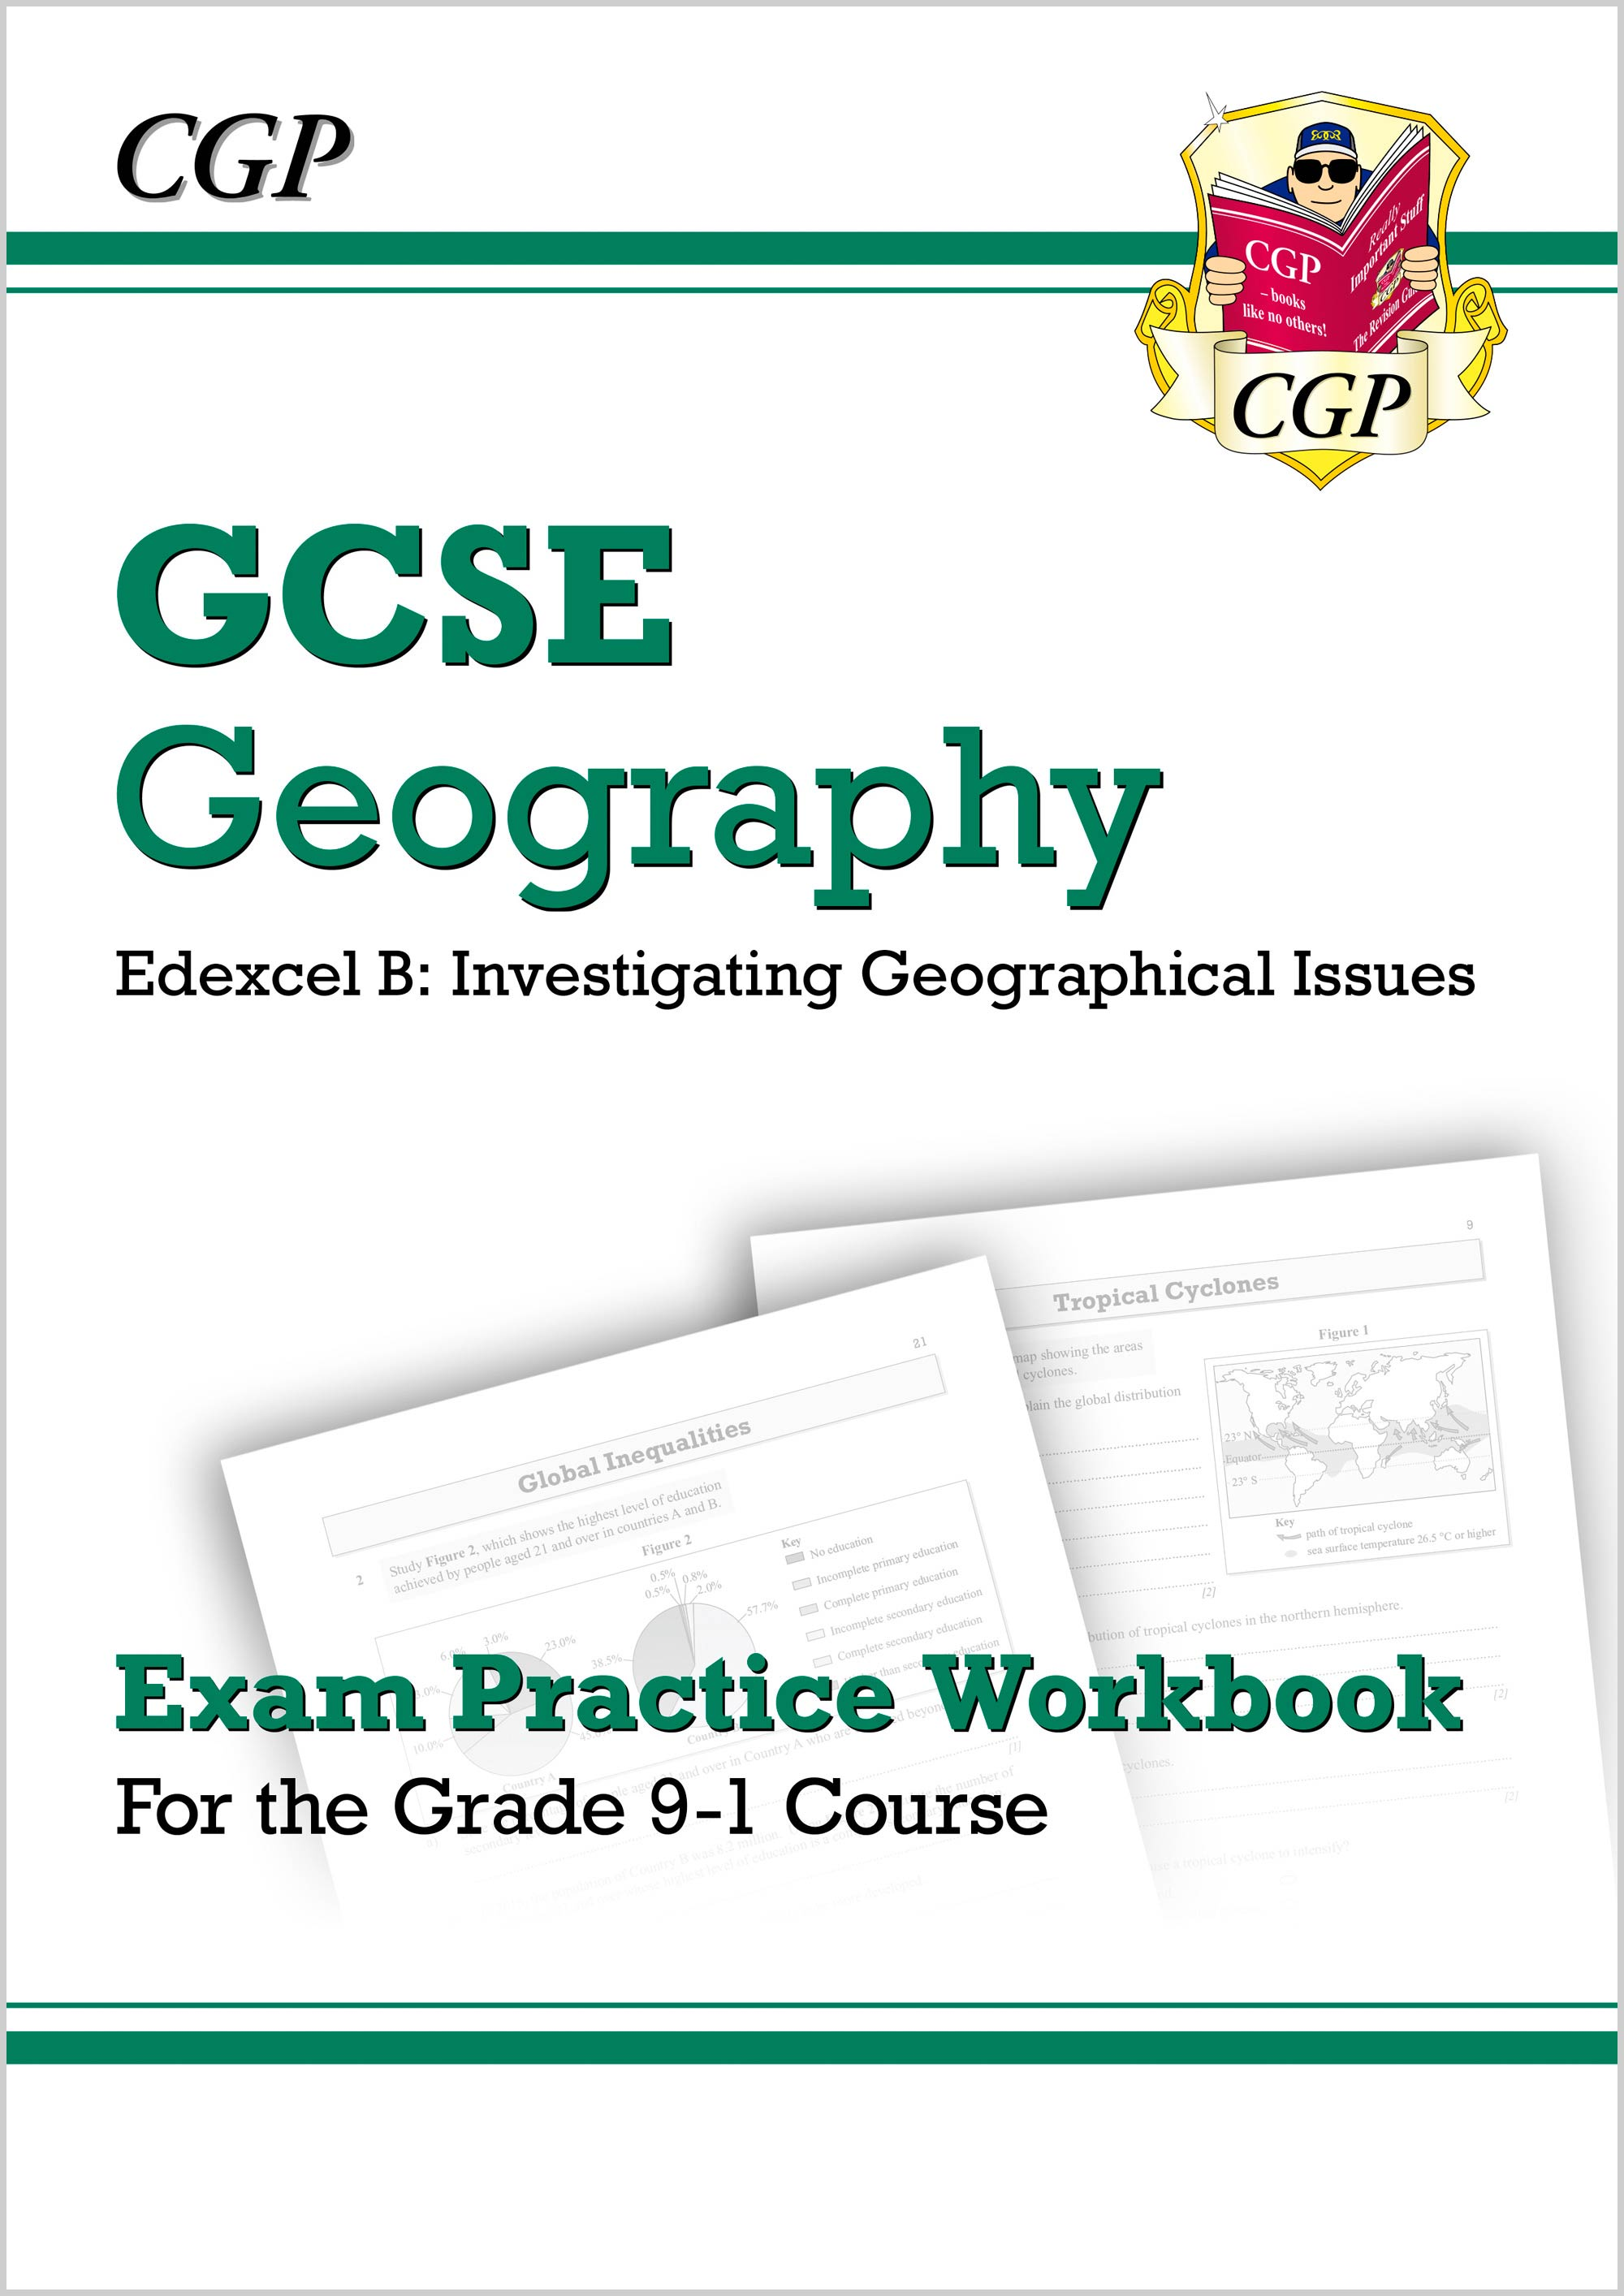 GEQ42DK - New Grade 9-1 GCSE Geography Edexcel B: Investigating Geographical Issues - Exam Practice